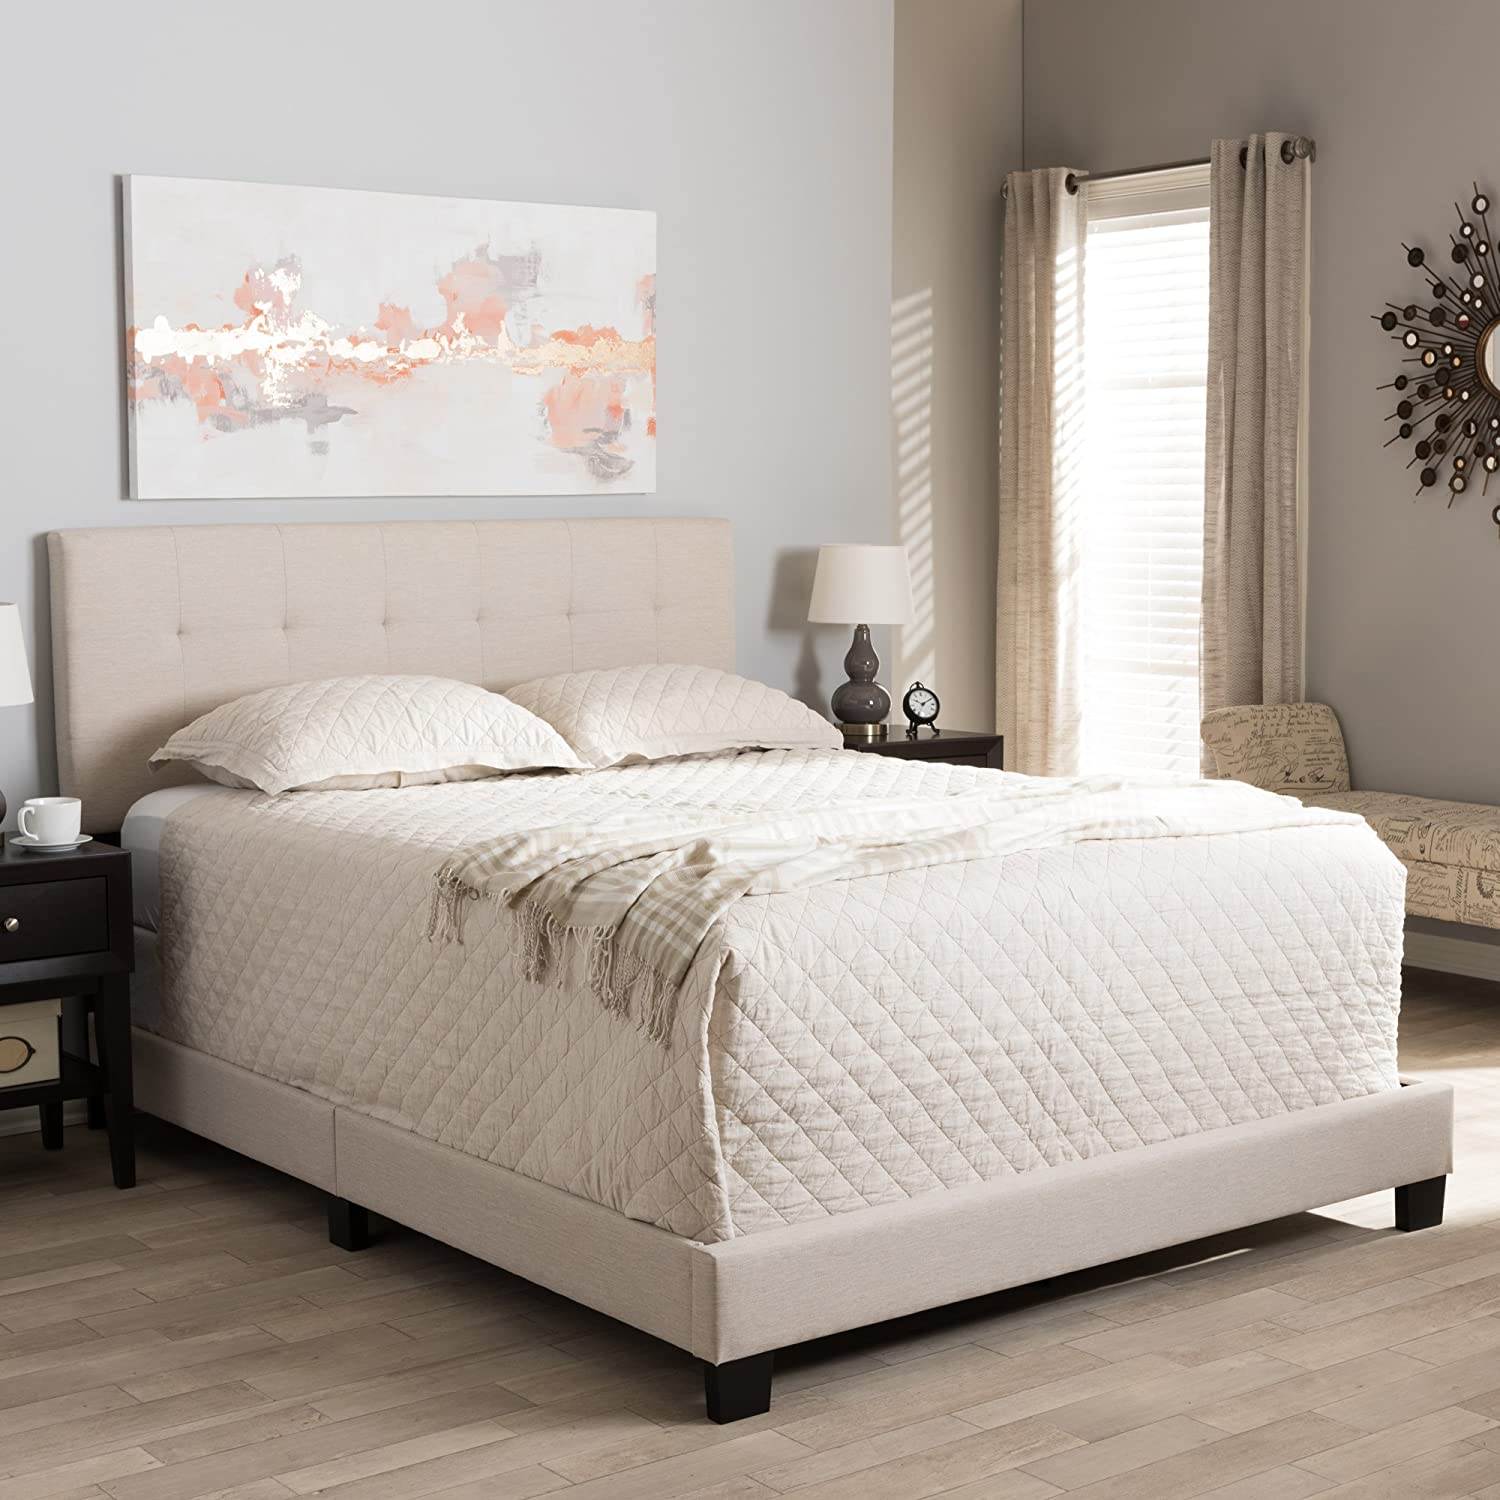 Bed Frame Twin Platform Bed with Wood Slat Support and Headboard and Footboard Pink